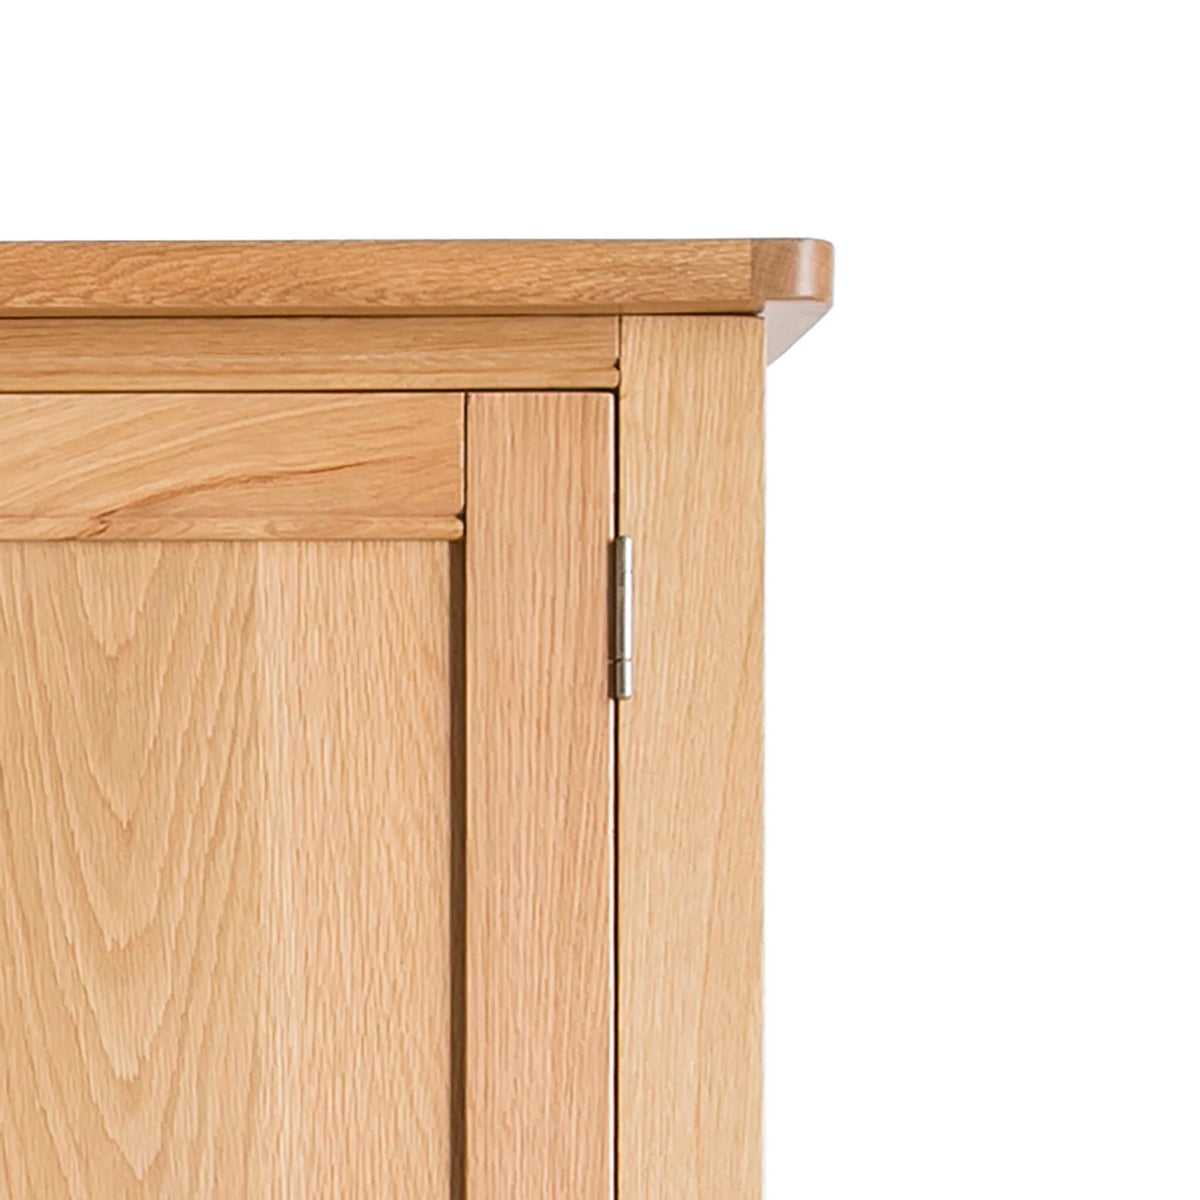 Hampshire Oak Triple Wardrobe with Drawers - Close up of top of wardrobe